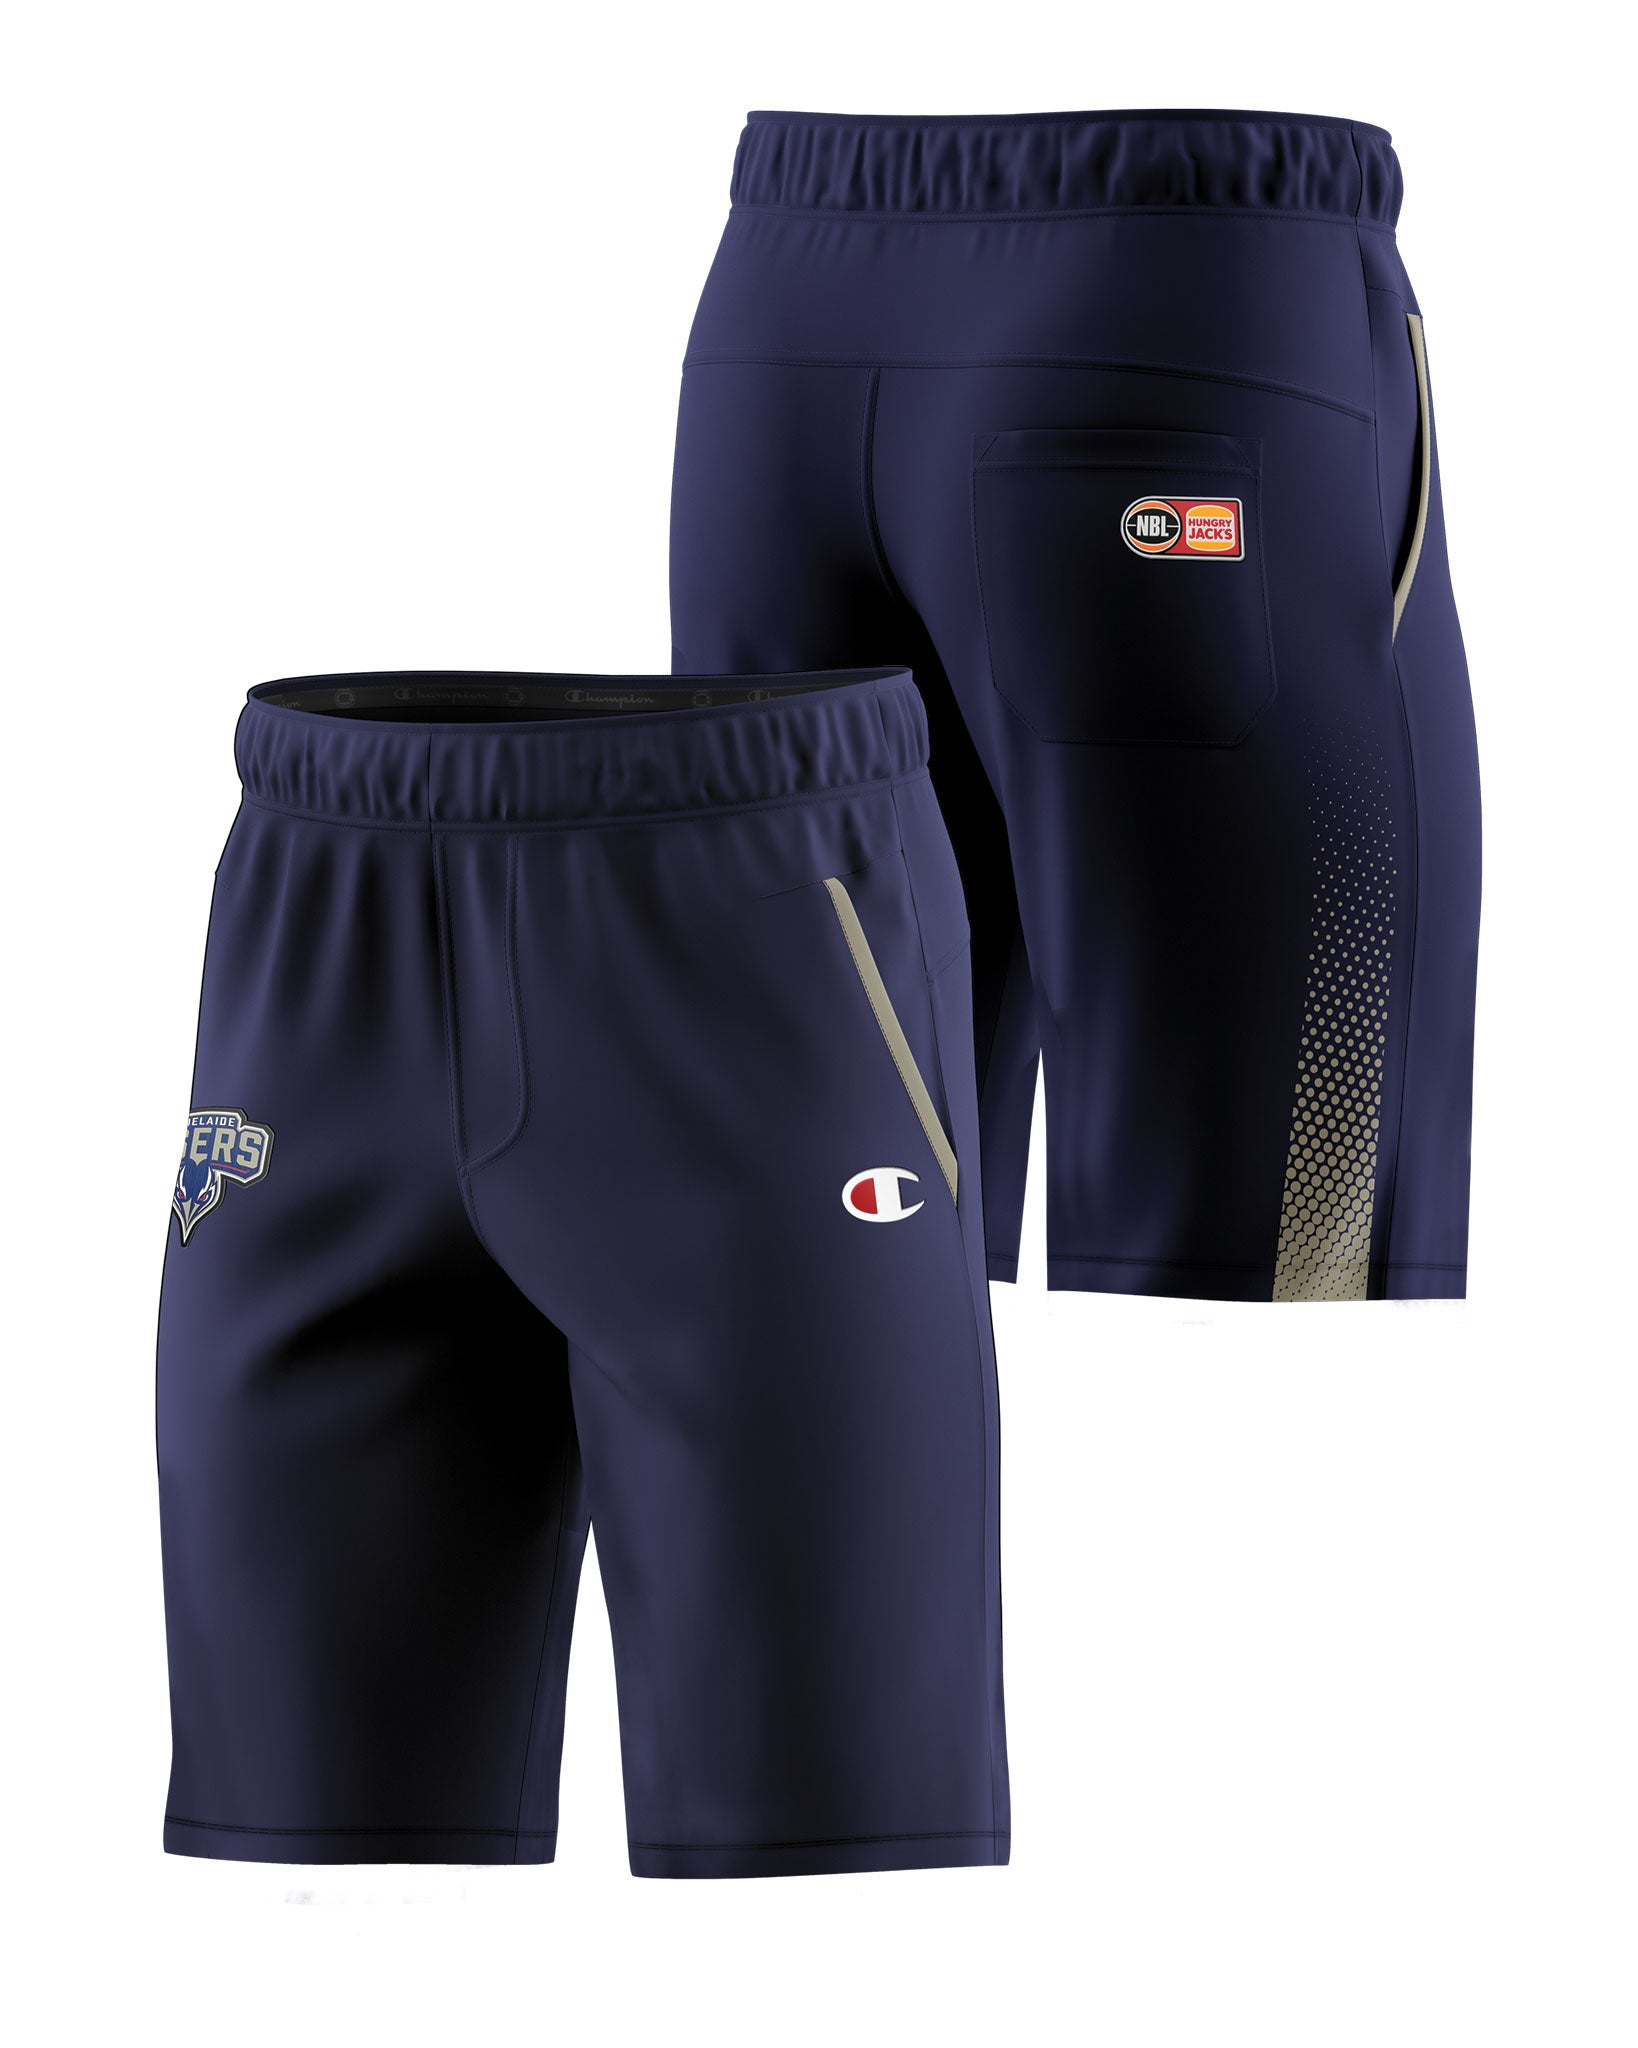 Adelaide 36ers 20/21 Performance Shorts